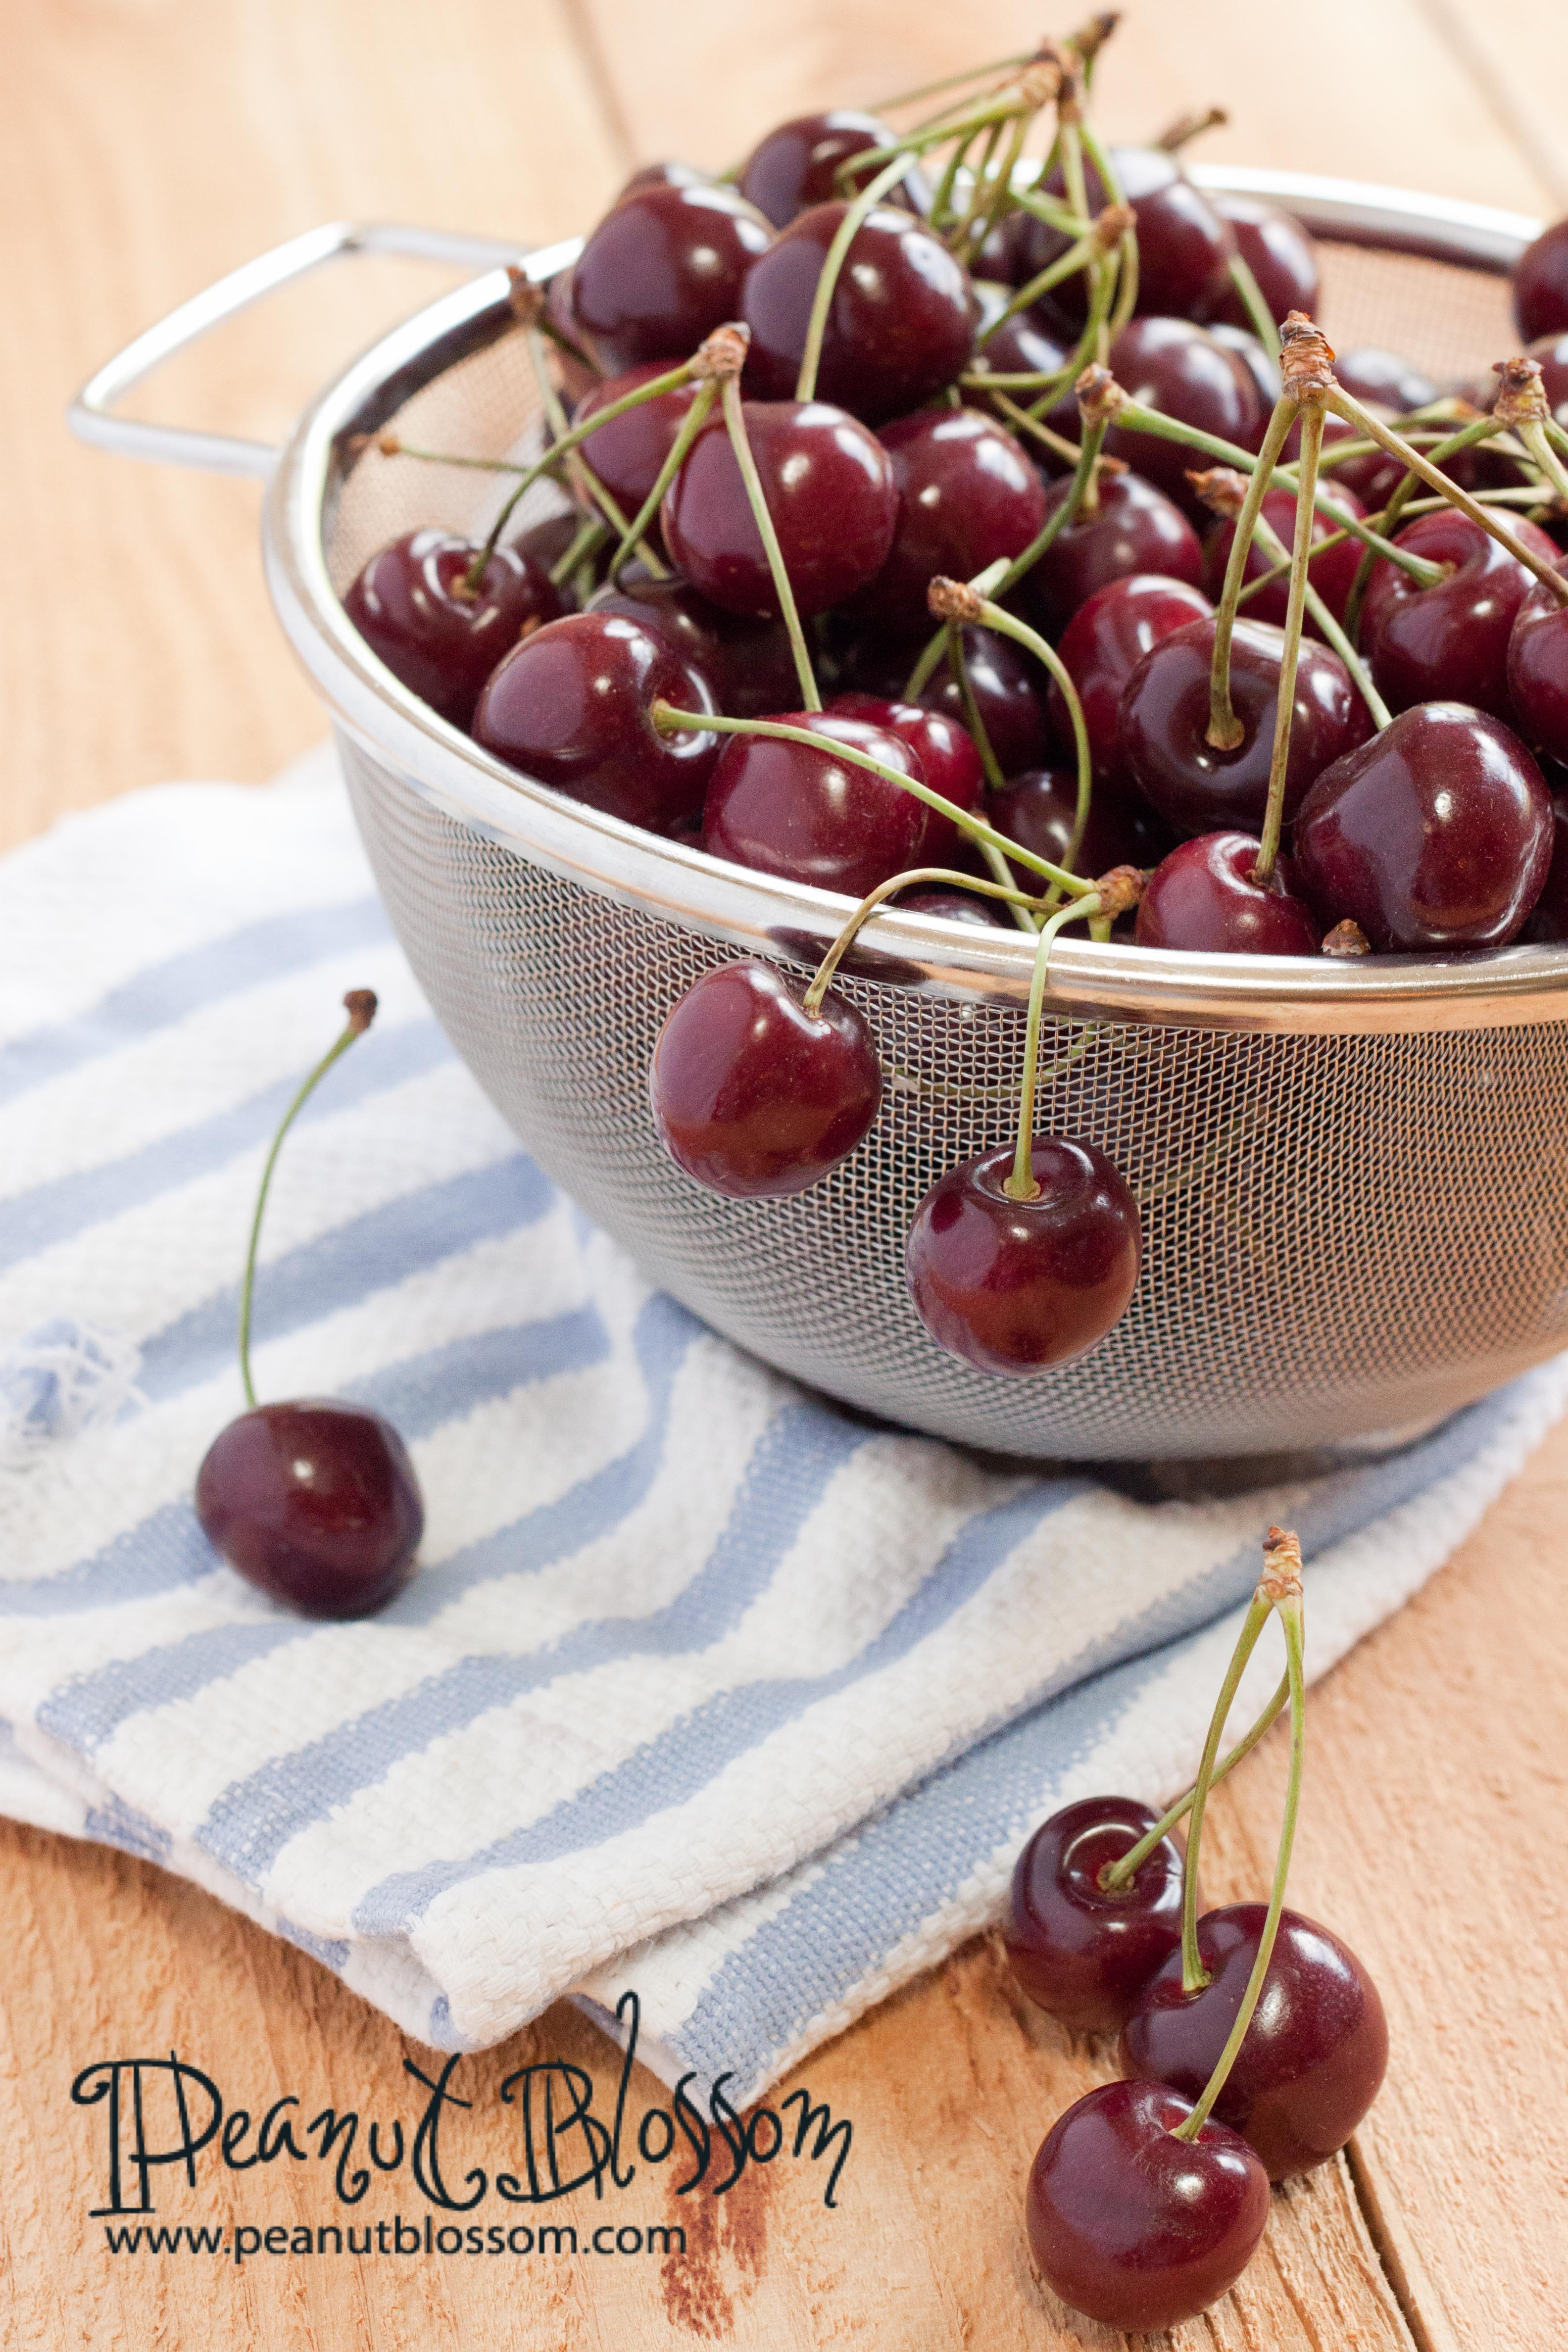 It's cherry time again